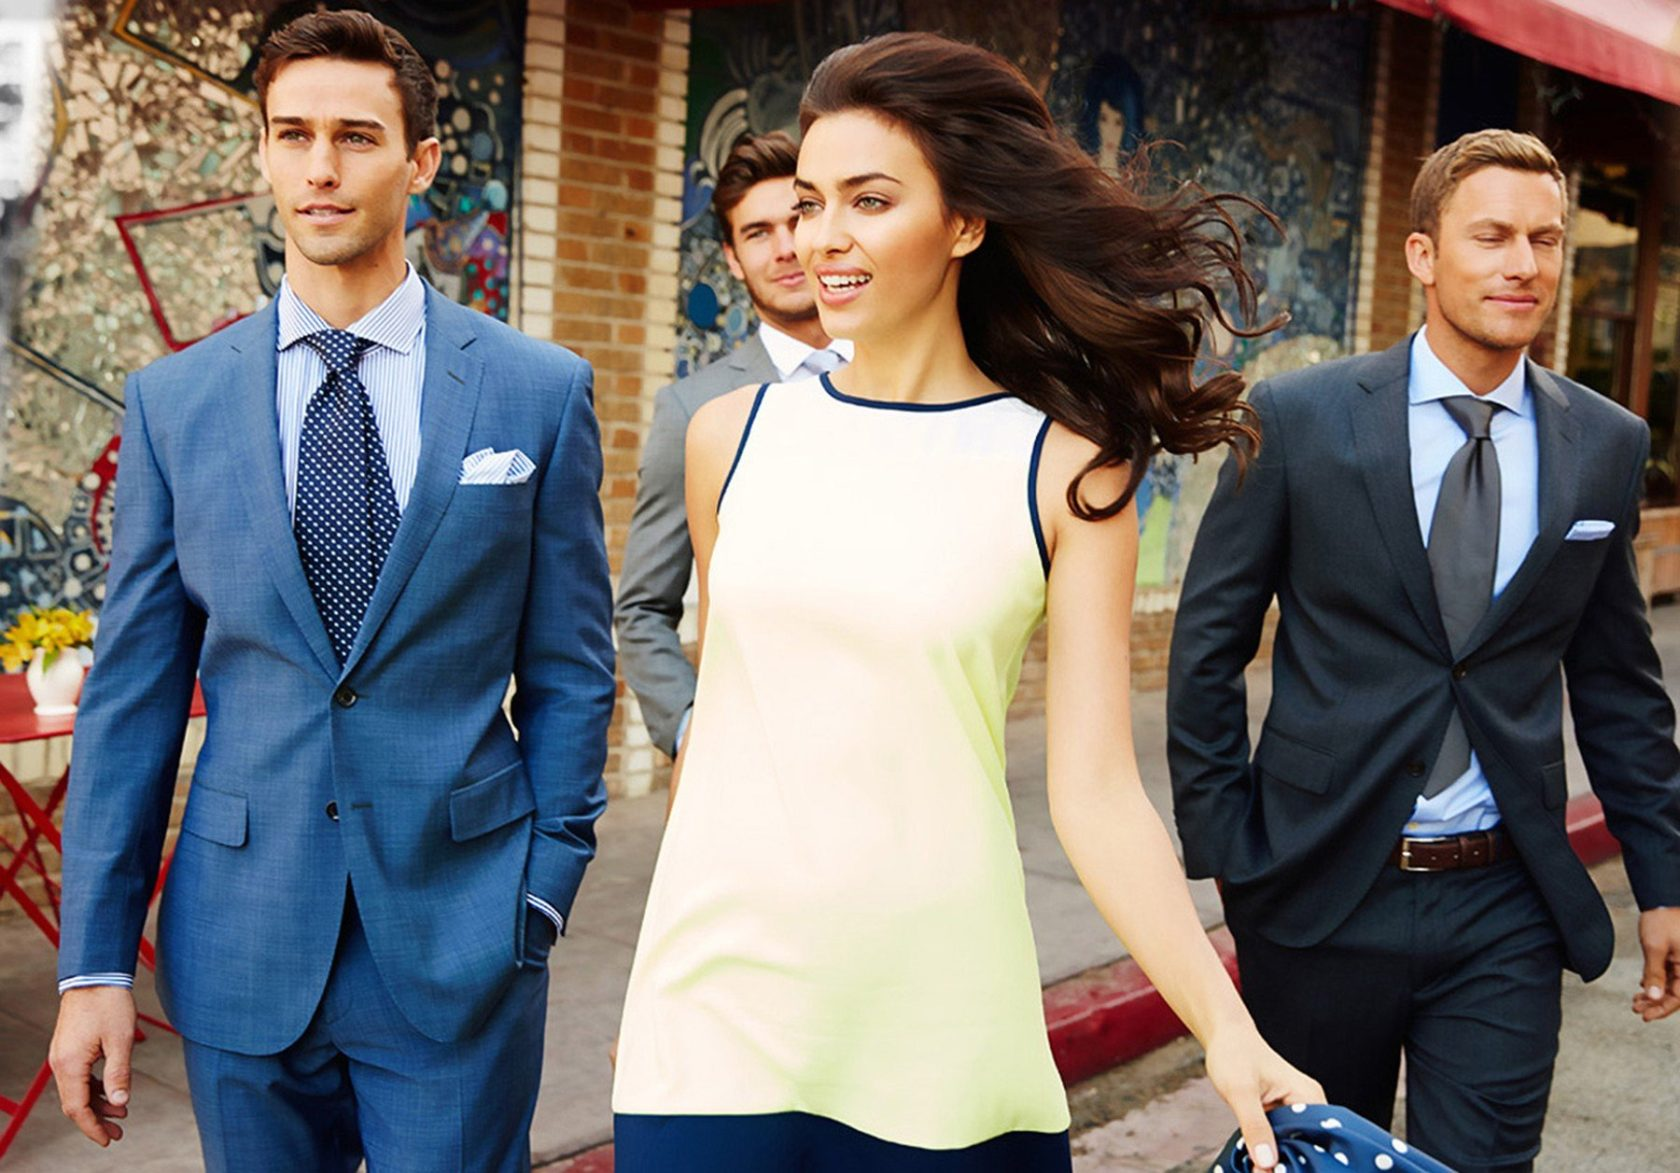 Model Irina Shayk and actor Patrick Dempsey in the spring summer 2014 ad campaign of Sacoor Brothers, Image: 186416072, License: Rights-managed, Restrictions: , Model Release: no, Credit line: Profimedia, Thunder Press